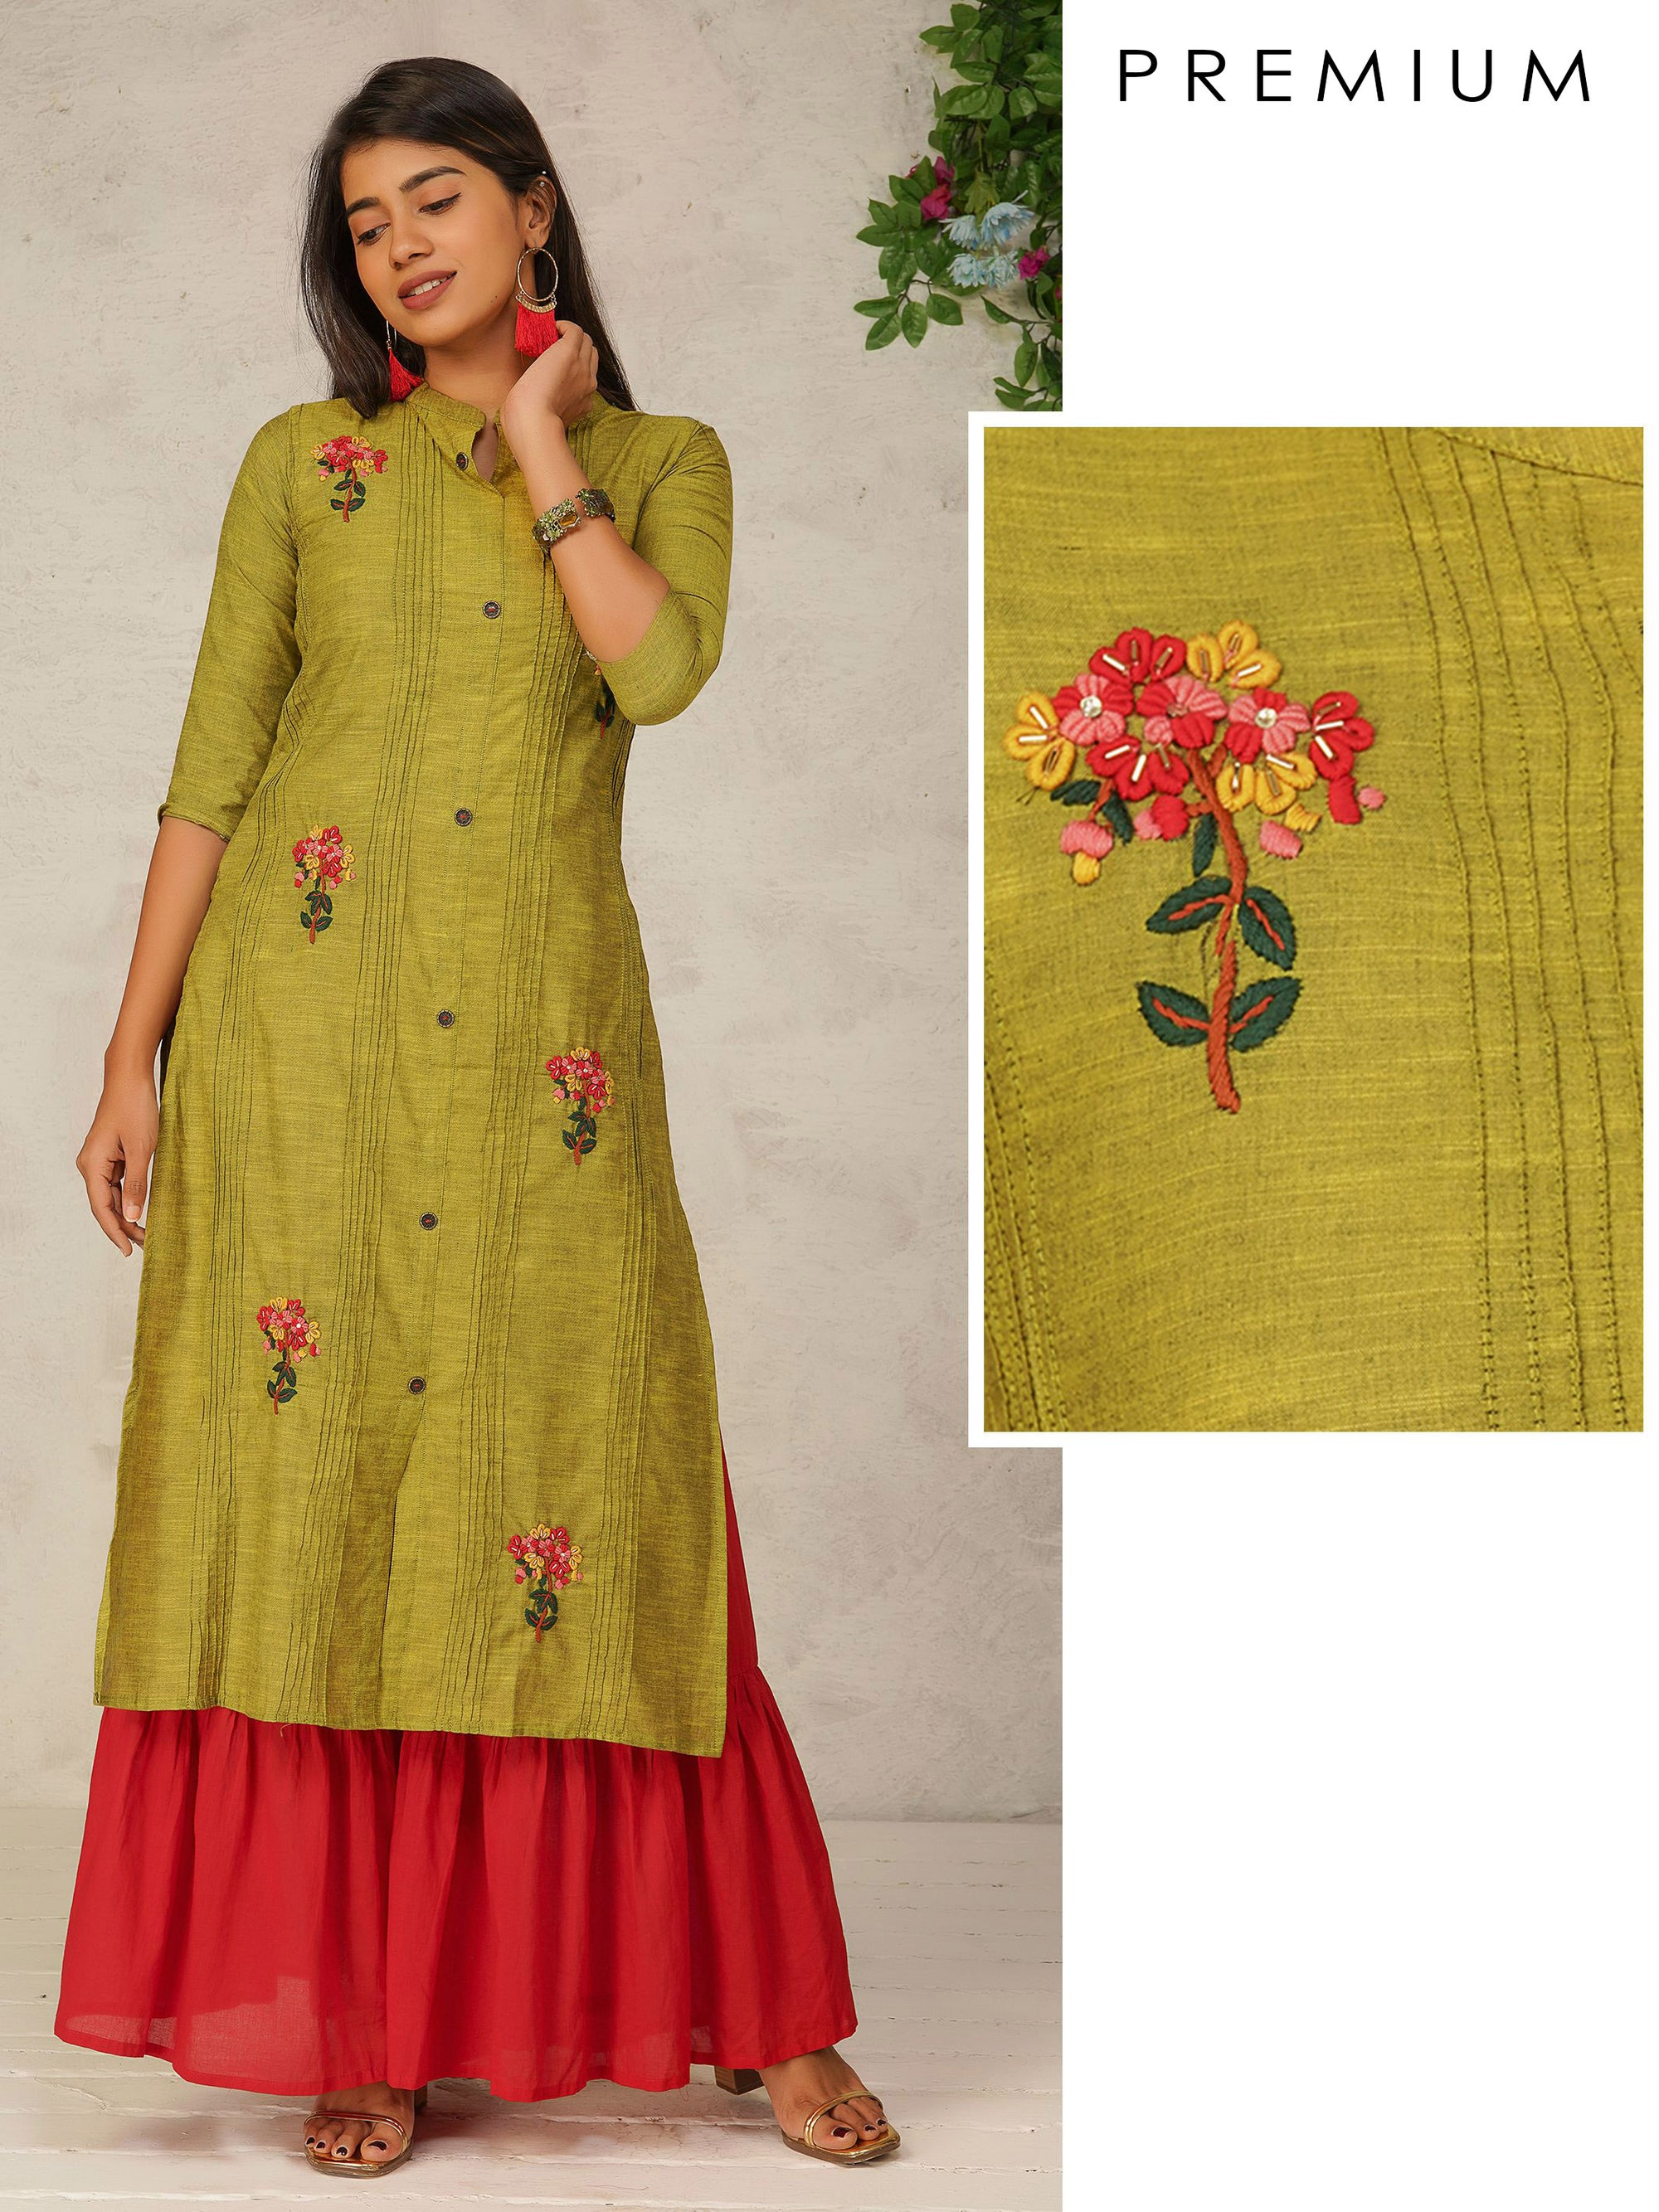 Bullion Knot Floral Embroidered Dual Toned Kurti - Chartreuse Green